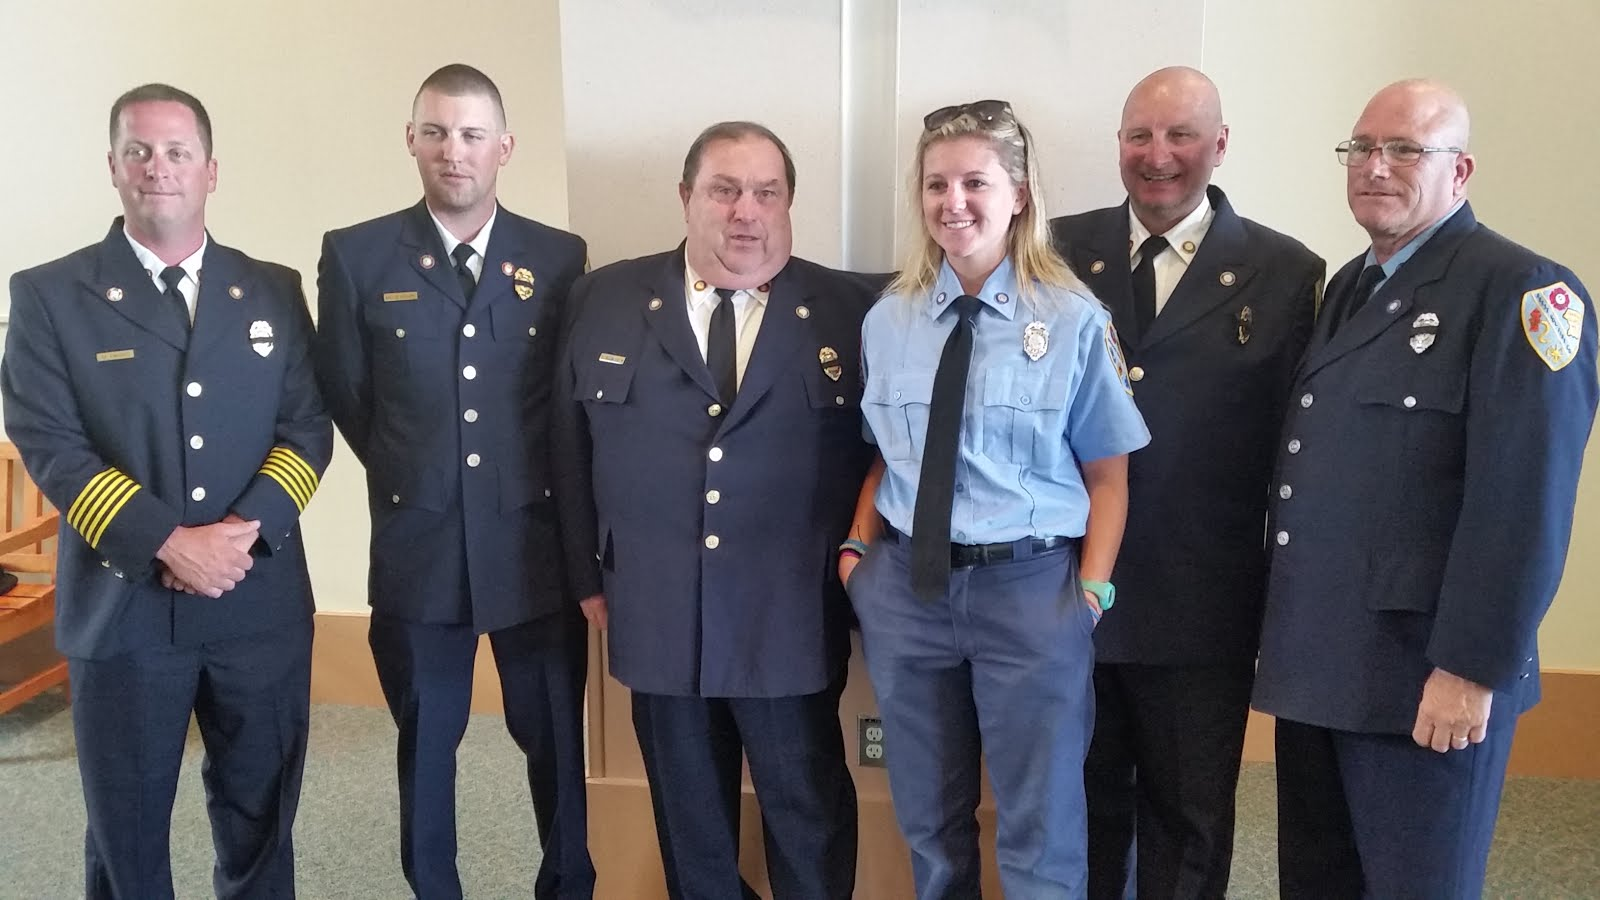 members of the reese vol fire co